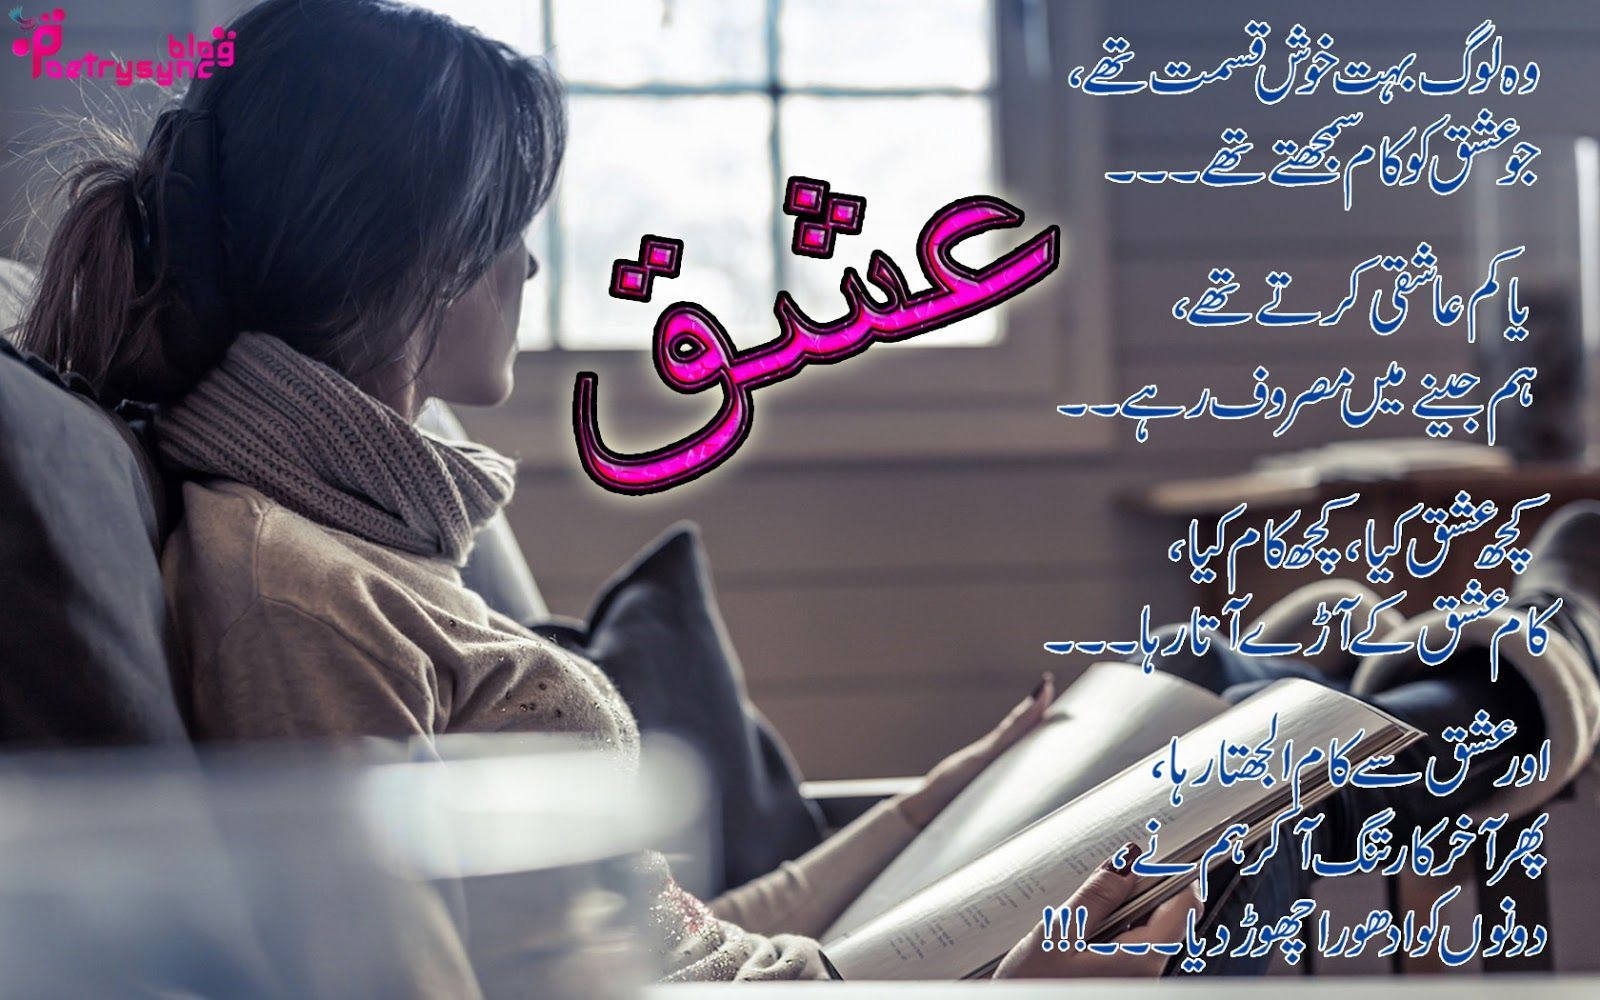 Manzil-E-Ishq Ghazal in Urdu with Images Free Download ...